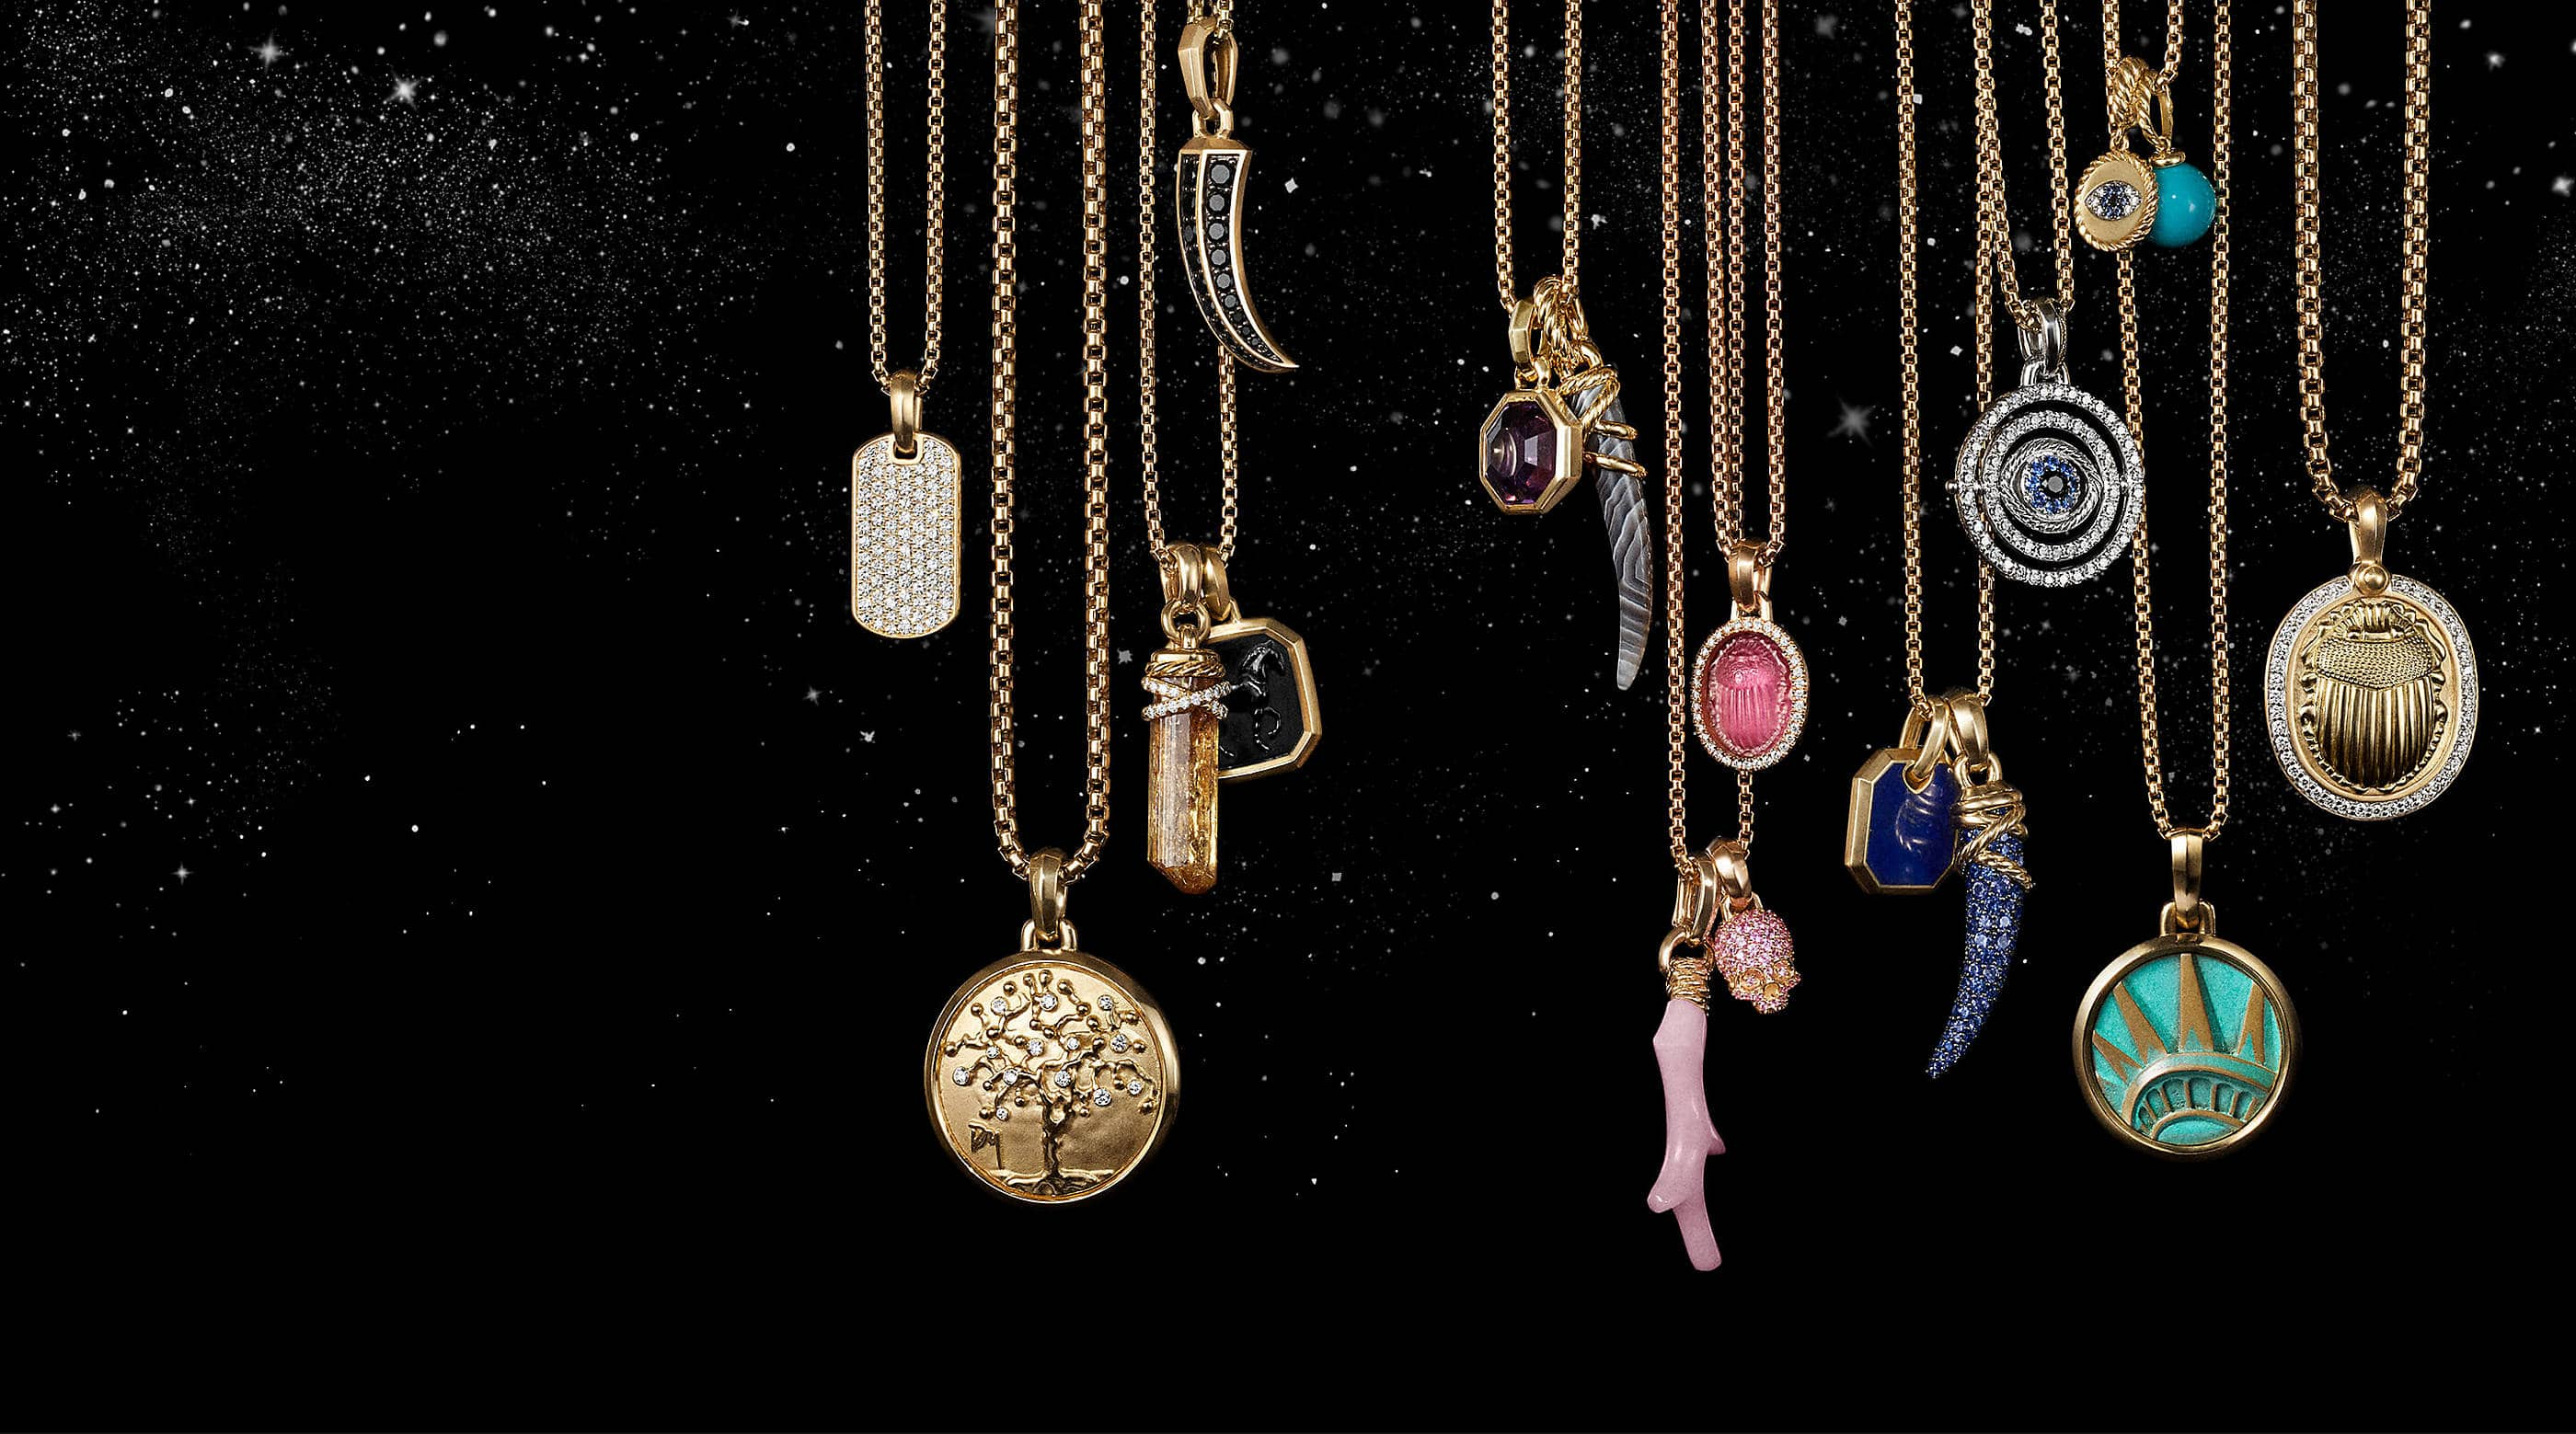 A color photograph shows 17 David Yurman amulet pendants hanging from a horizontal row of chain necklaces in front of a starry night sky. The women's jewelry is crafted from 18K yellow gold or sterling silver with or without pavé diamonds and an array of colored gemstones. The pendants come in various shapes such as a tag, branch of coral, horn, dagger, or skull or depict a multitude of images such as a tree of life, scarab and the Statue of Liberty's crown.